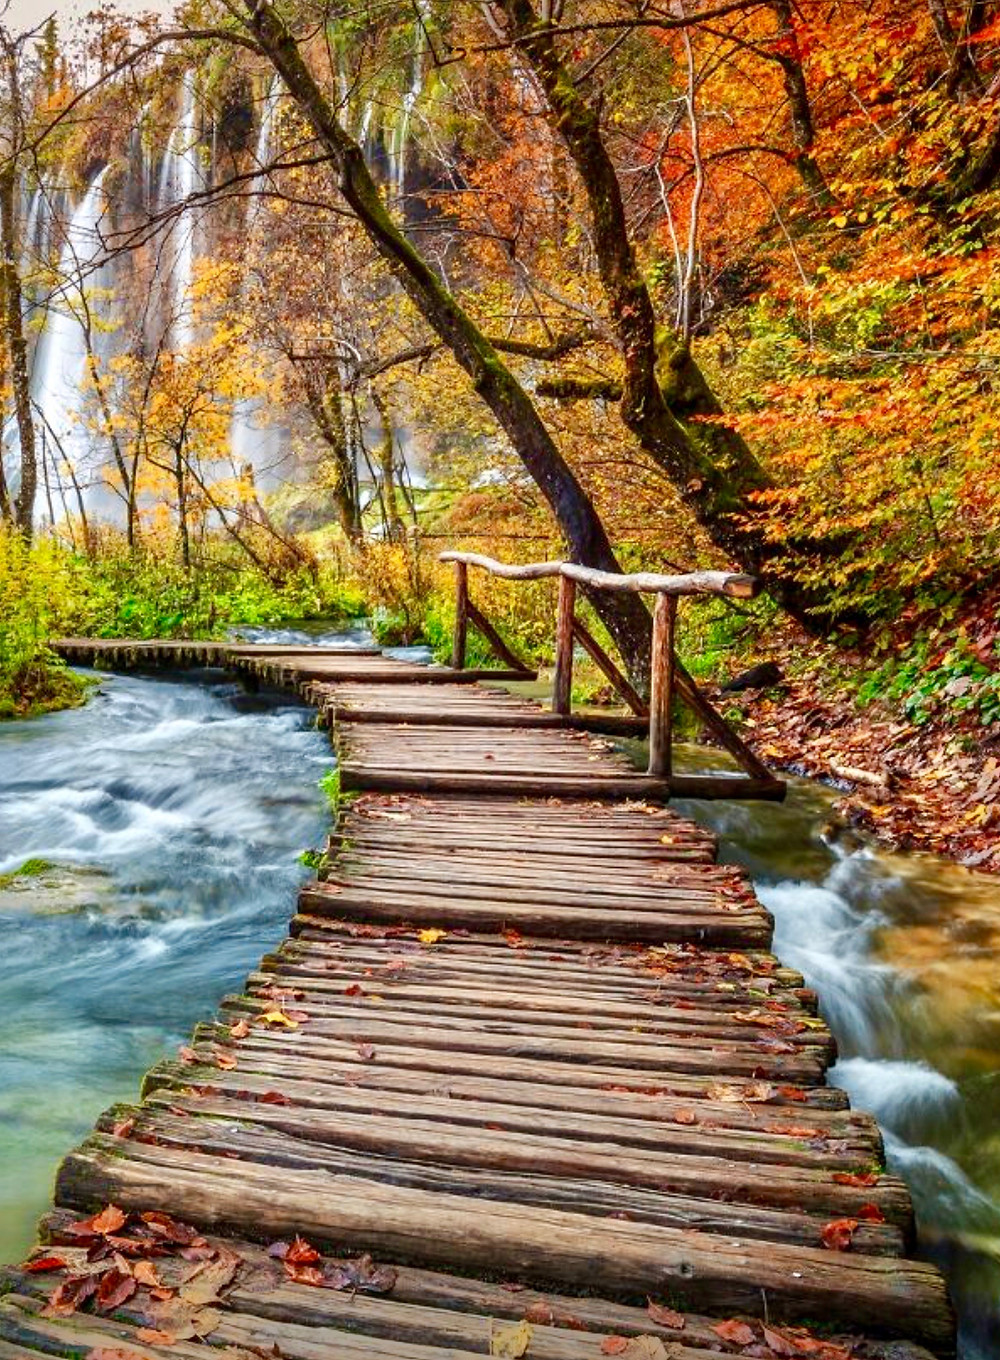 boardwalk in Plitvice Lakes National Park